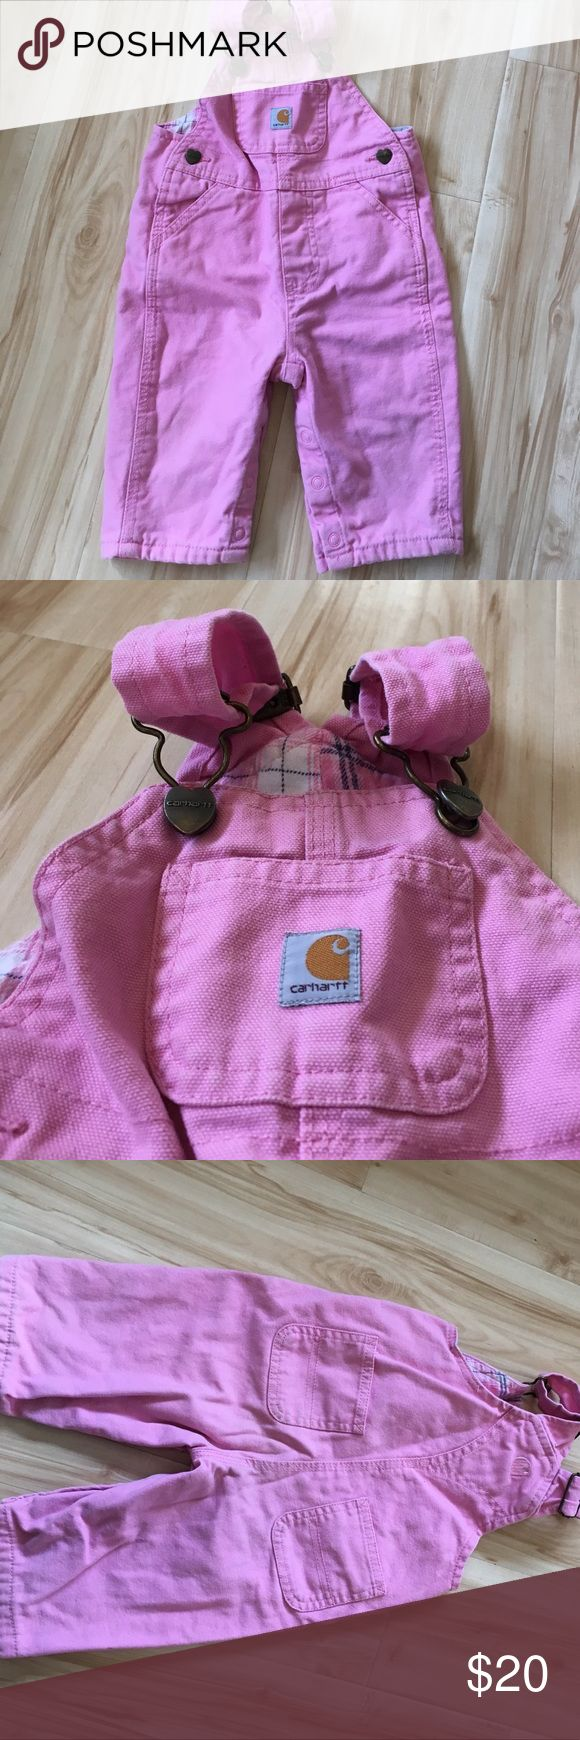 Carhartt Bibs! Baby girl, flannel lined Carhartt bibs! Nice and warm! Great used condition. No rips, tears or stains. Clean & smoke free home! Carhartt Bottoms Overalls